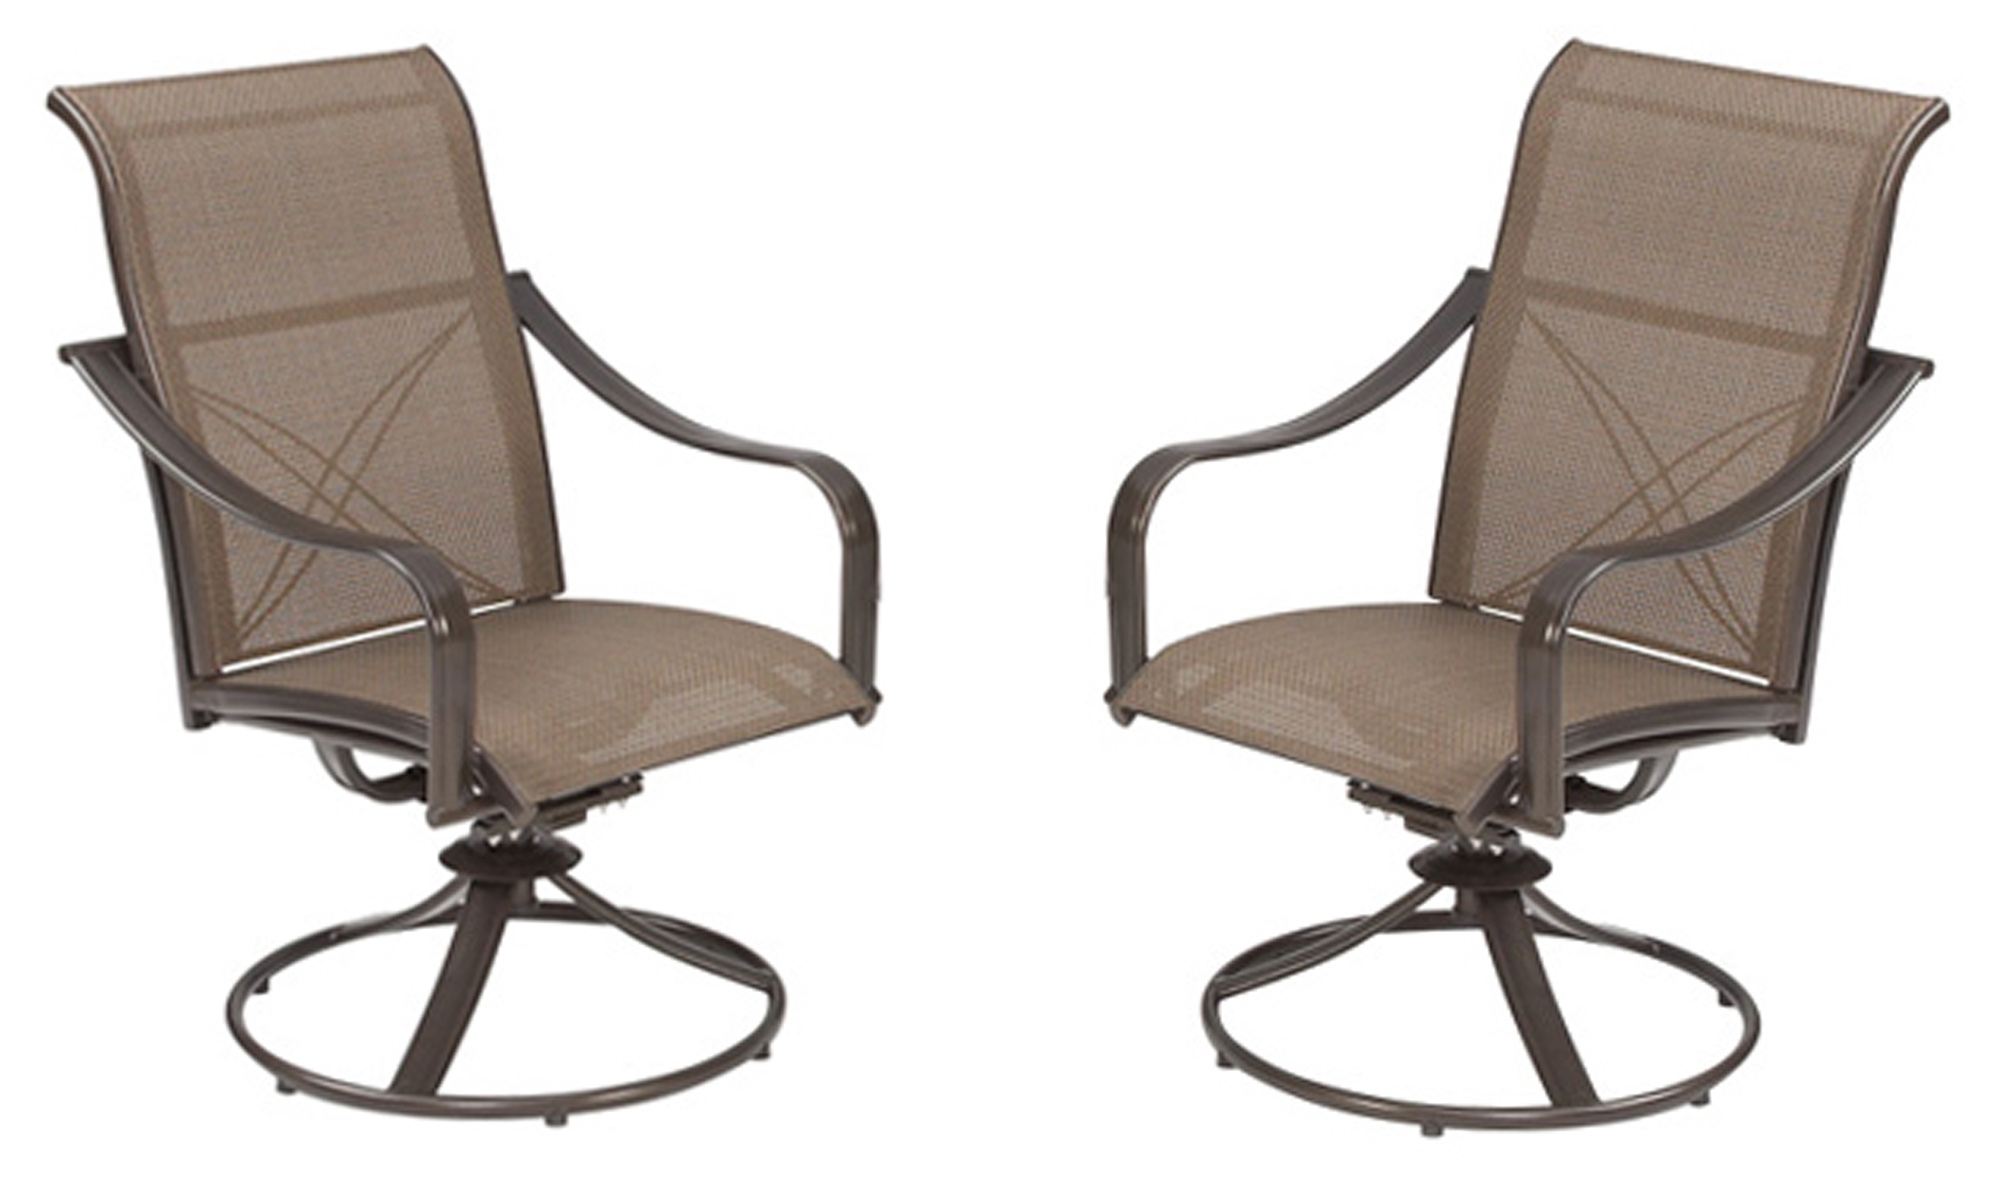 Casual Living Worldwide Recalls Swivel Patio Chairs Due To Black Pertaining To Hampton Bay Rocking Patio Chairs (#2 of 15)